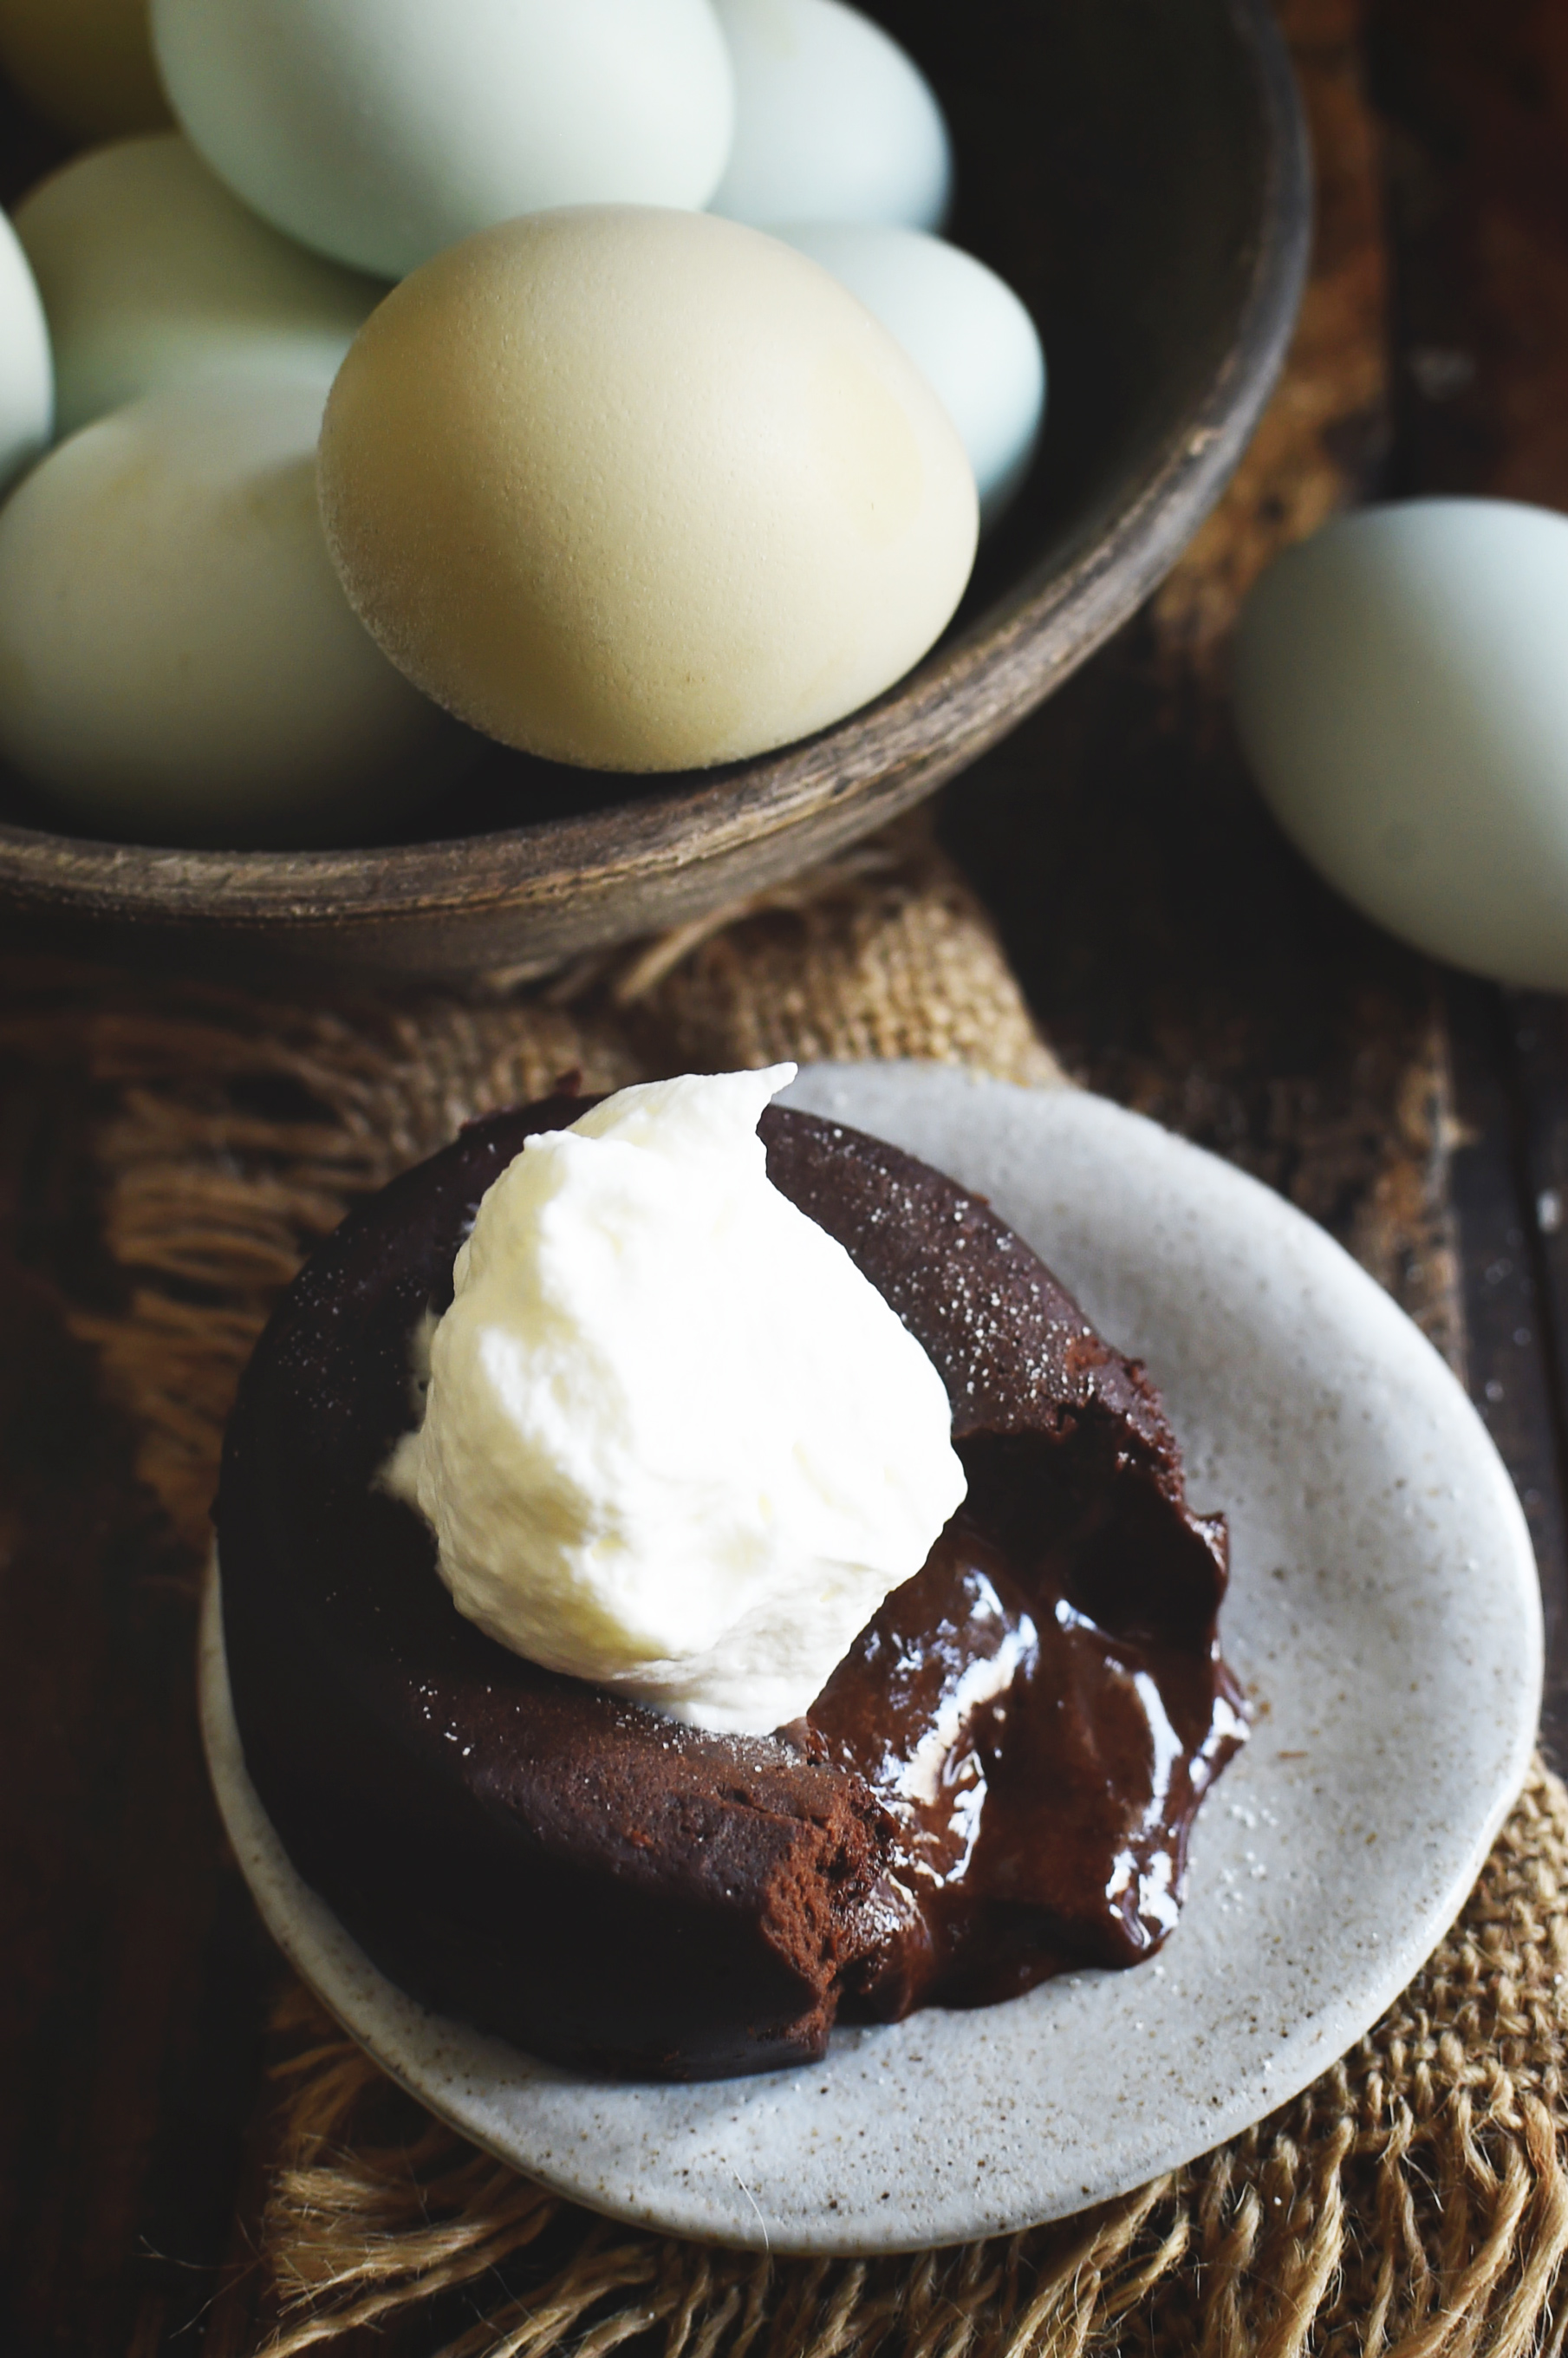 Low-Carb Chocolate Lava Cake served with whipped cream on the top.